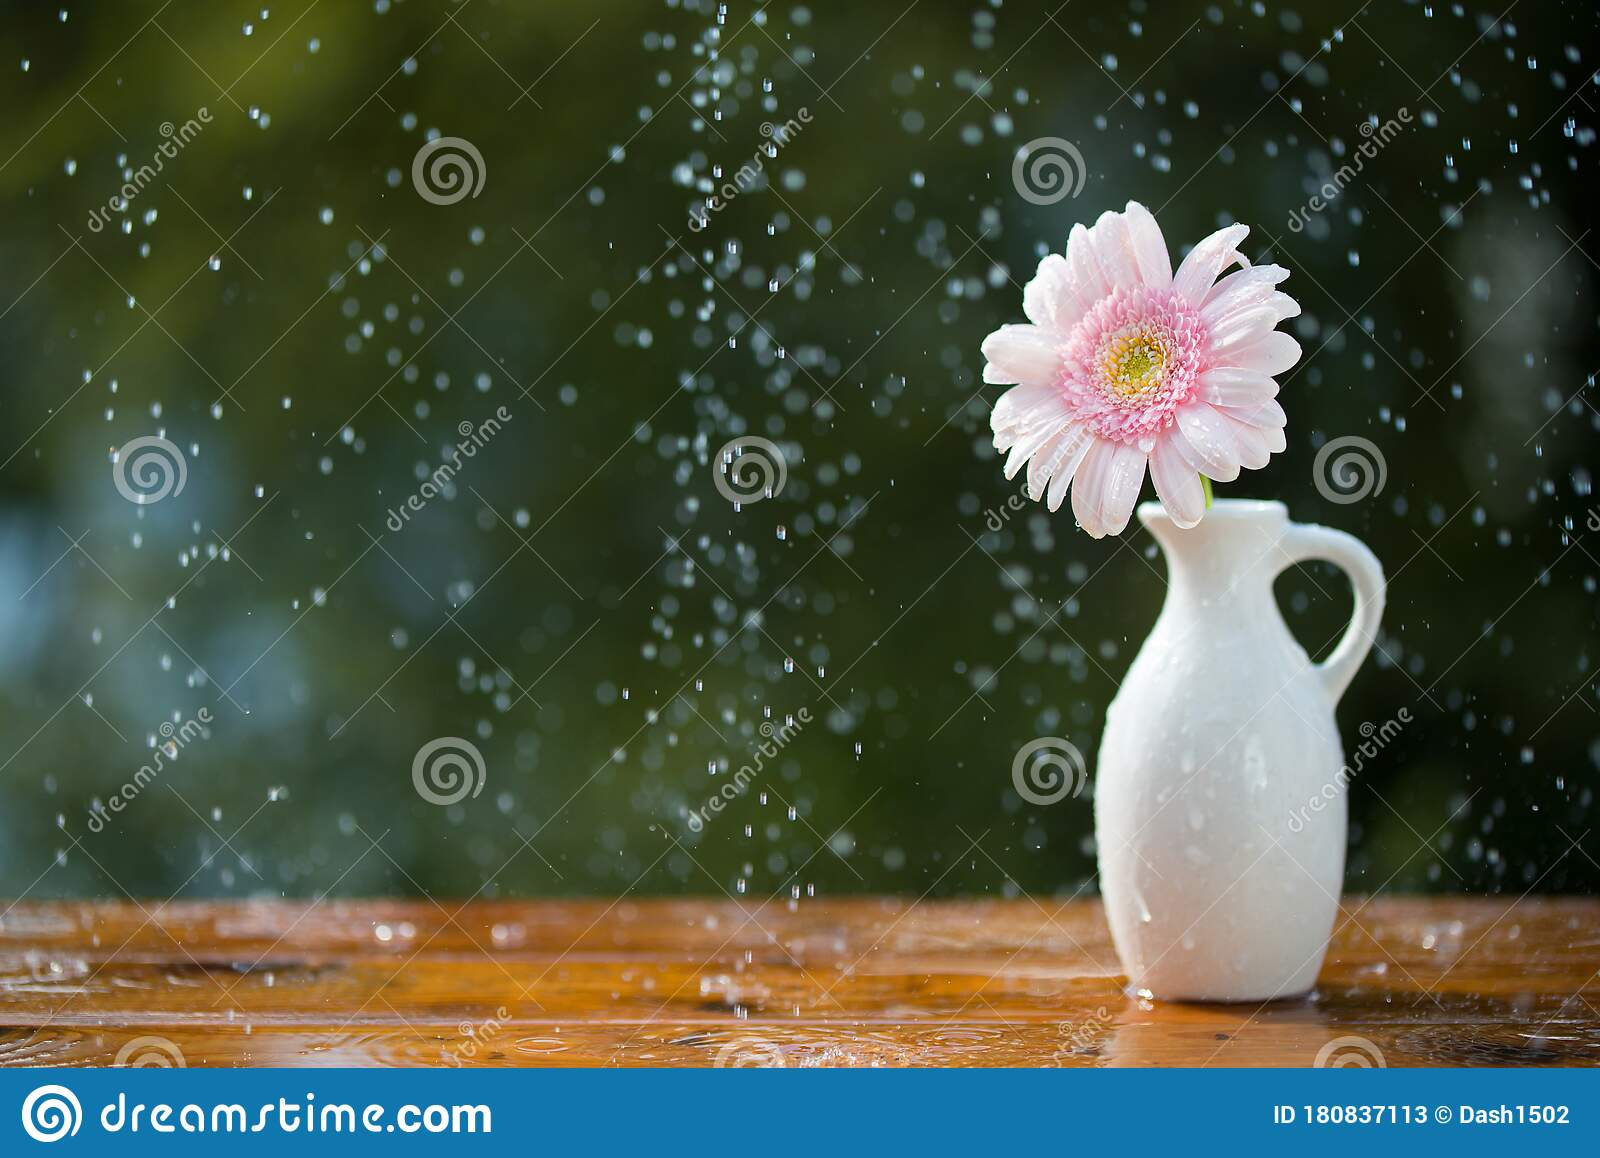 Pink Gerbera Daisy Flower In Vase On Wooden Table Outdoors Under The Rain Stock Image Image Of Flora Bright 180837113